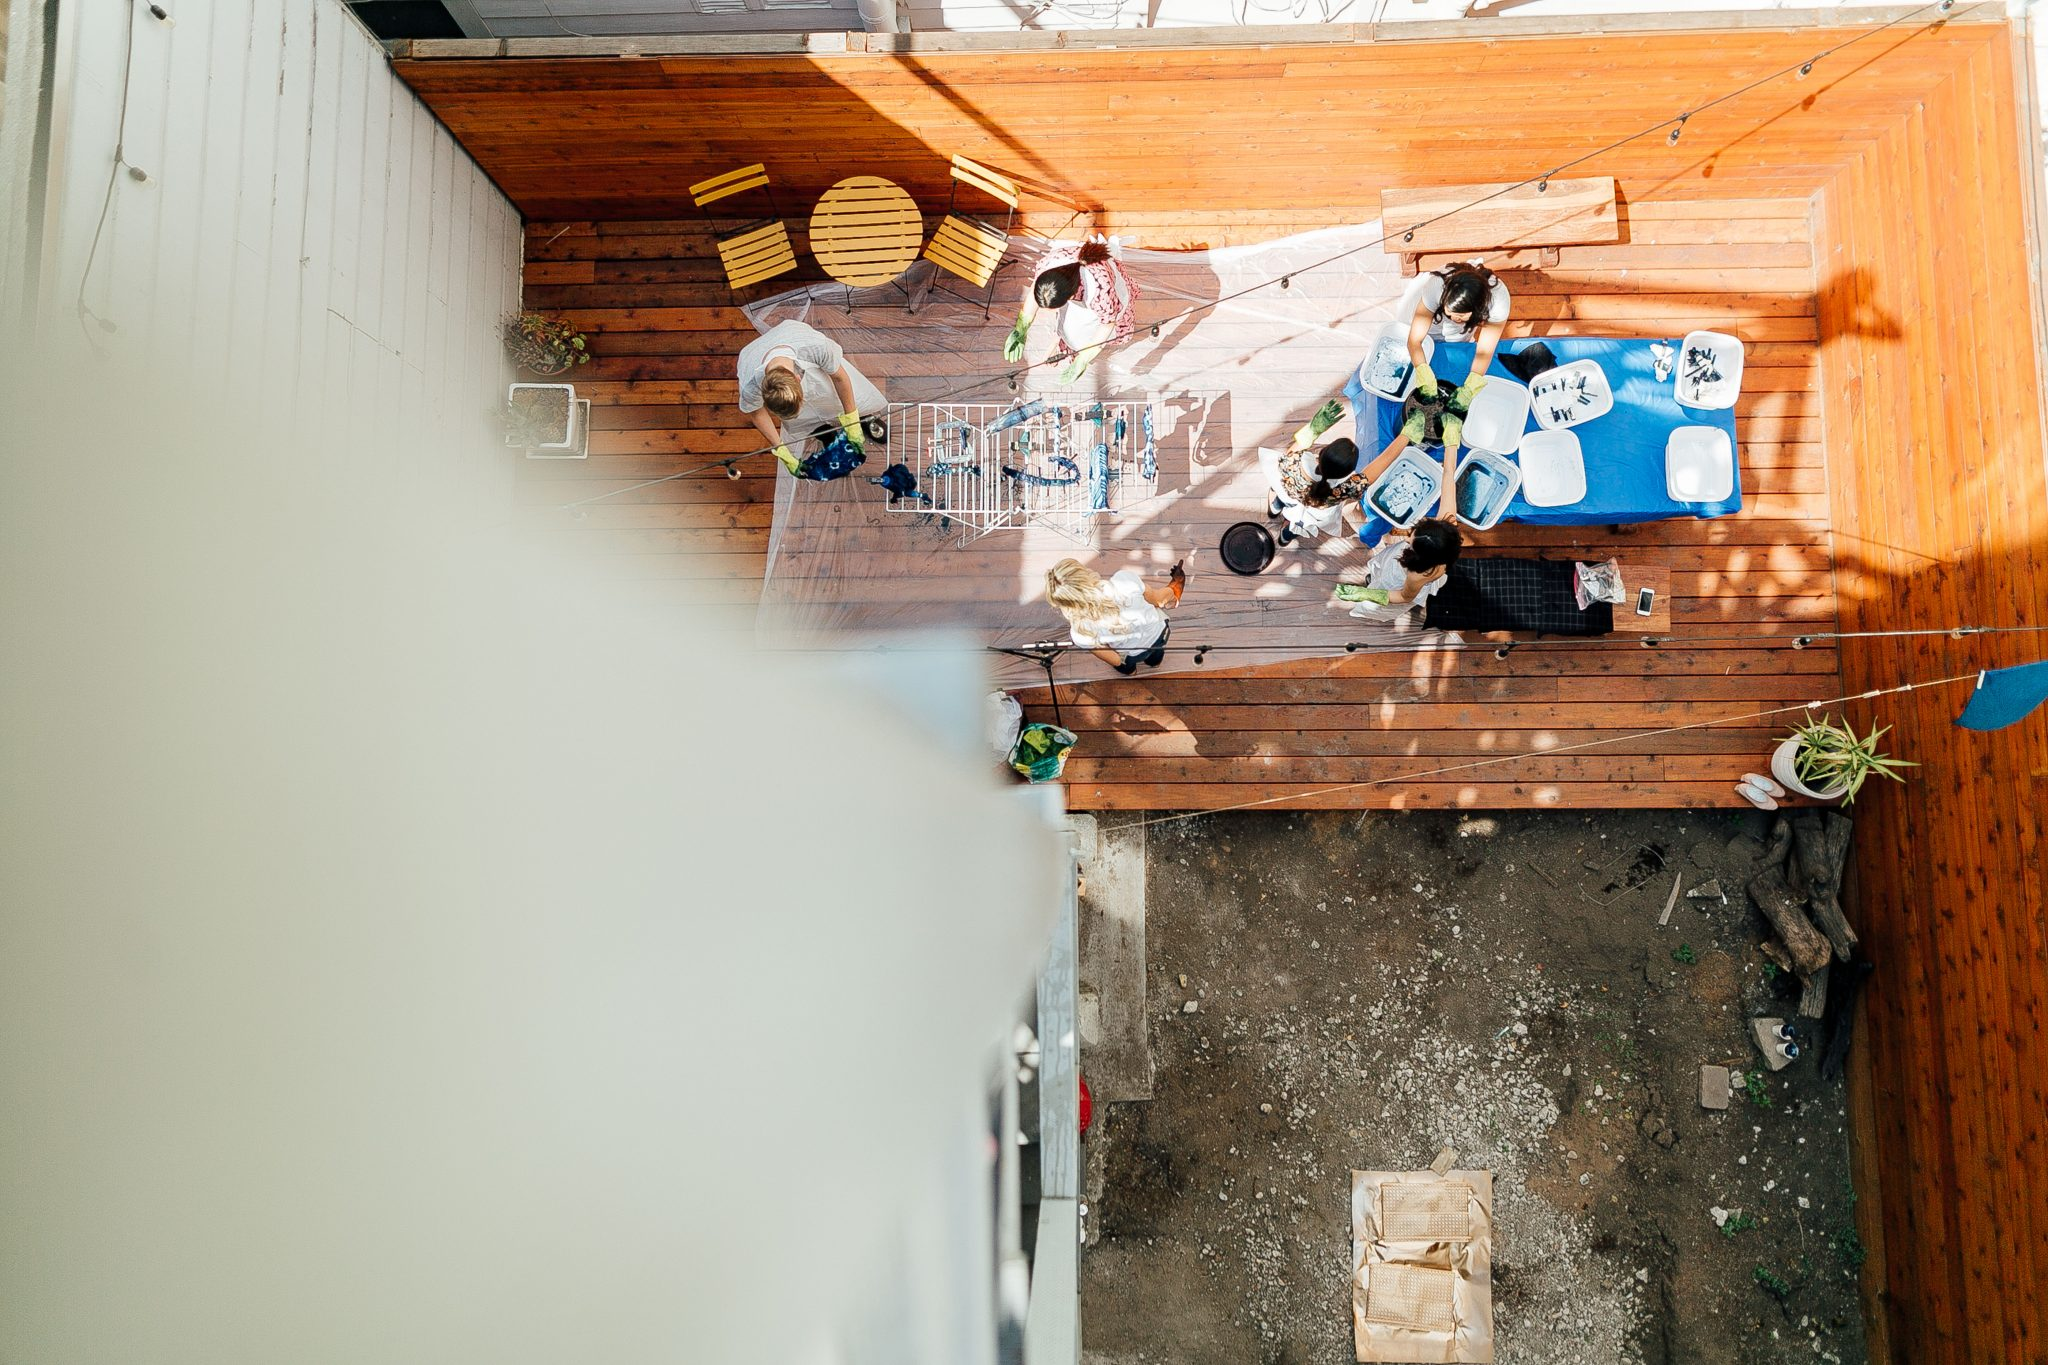 Peerspace workshop in a beautiful loft in the Mission of San Francisco with Rising Tide